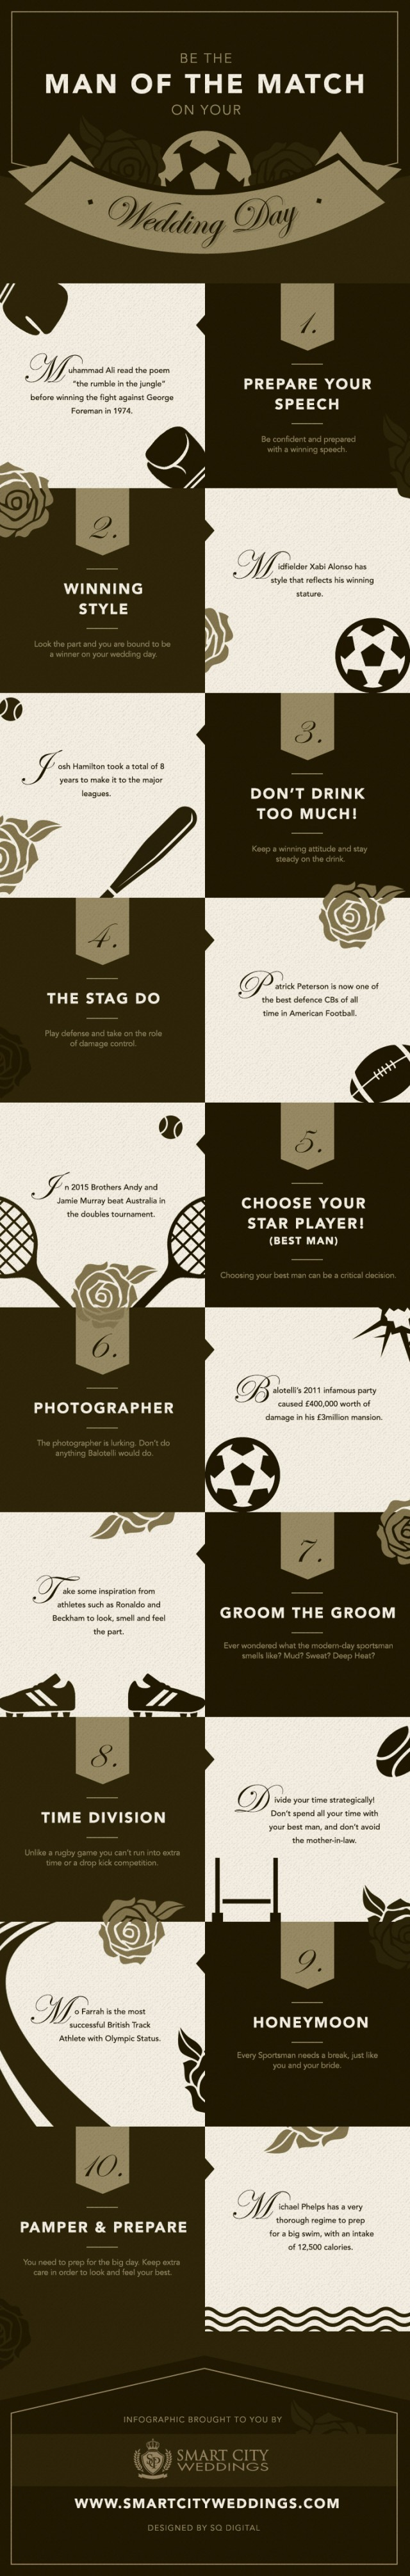 man-of-the-match-on-your-wedding-day-infographic-plaza